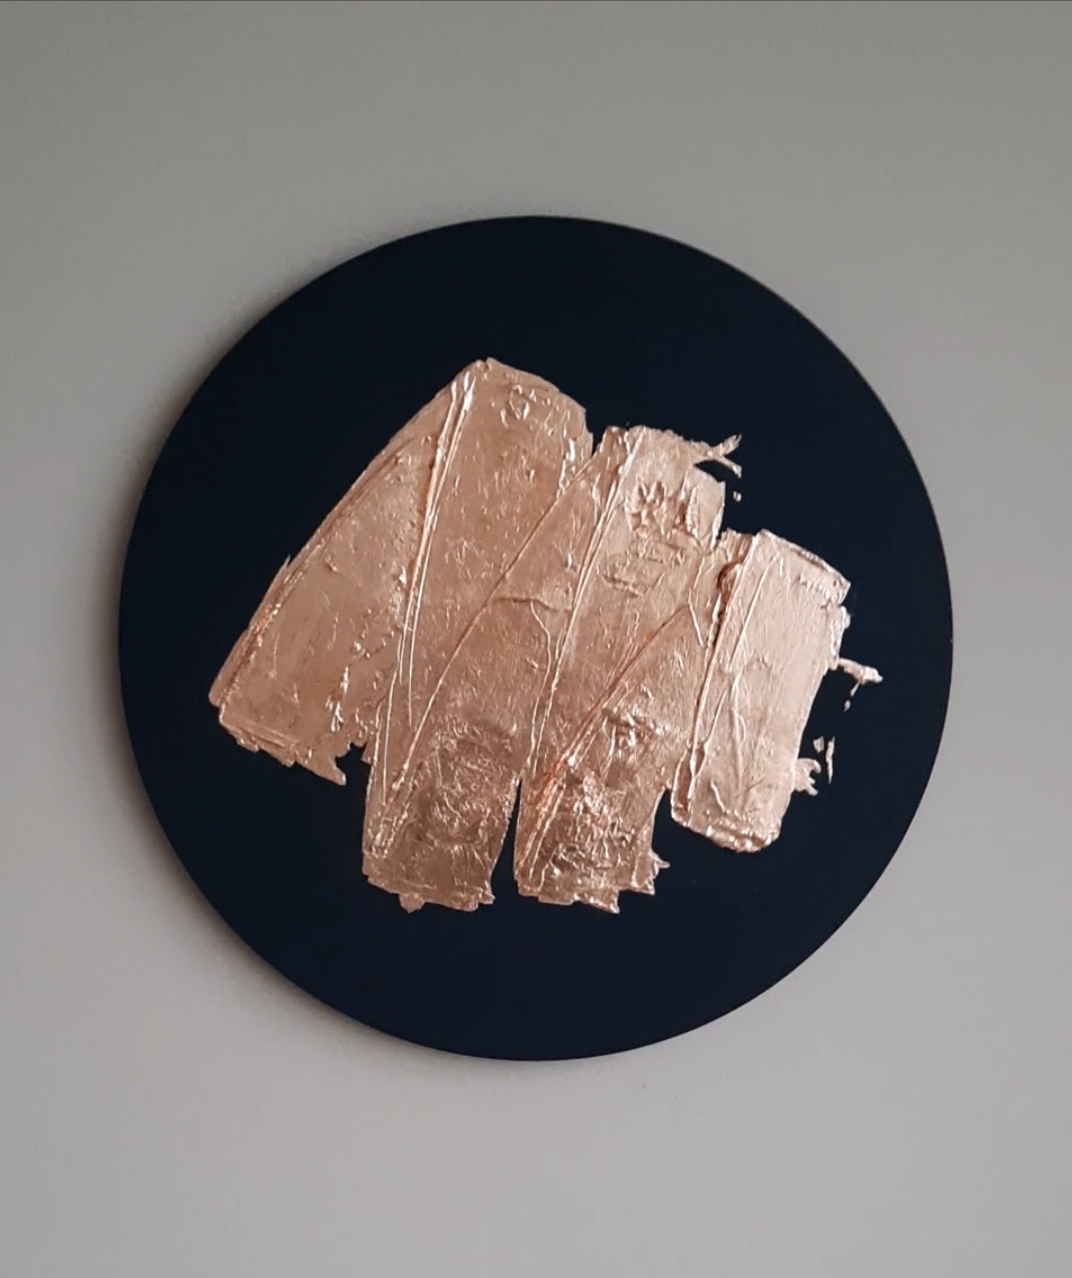 Copper abstraction